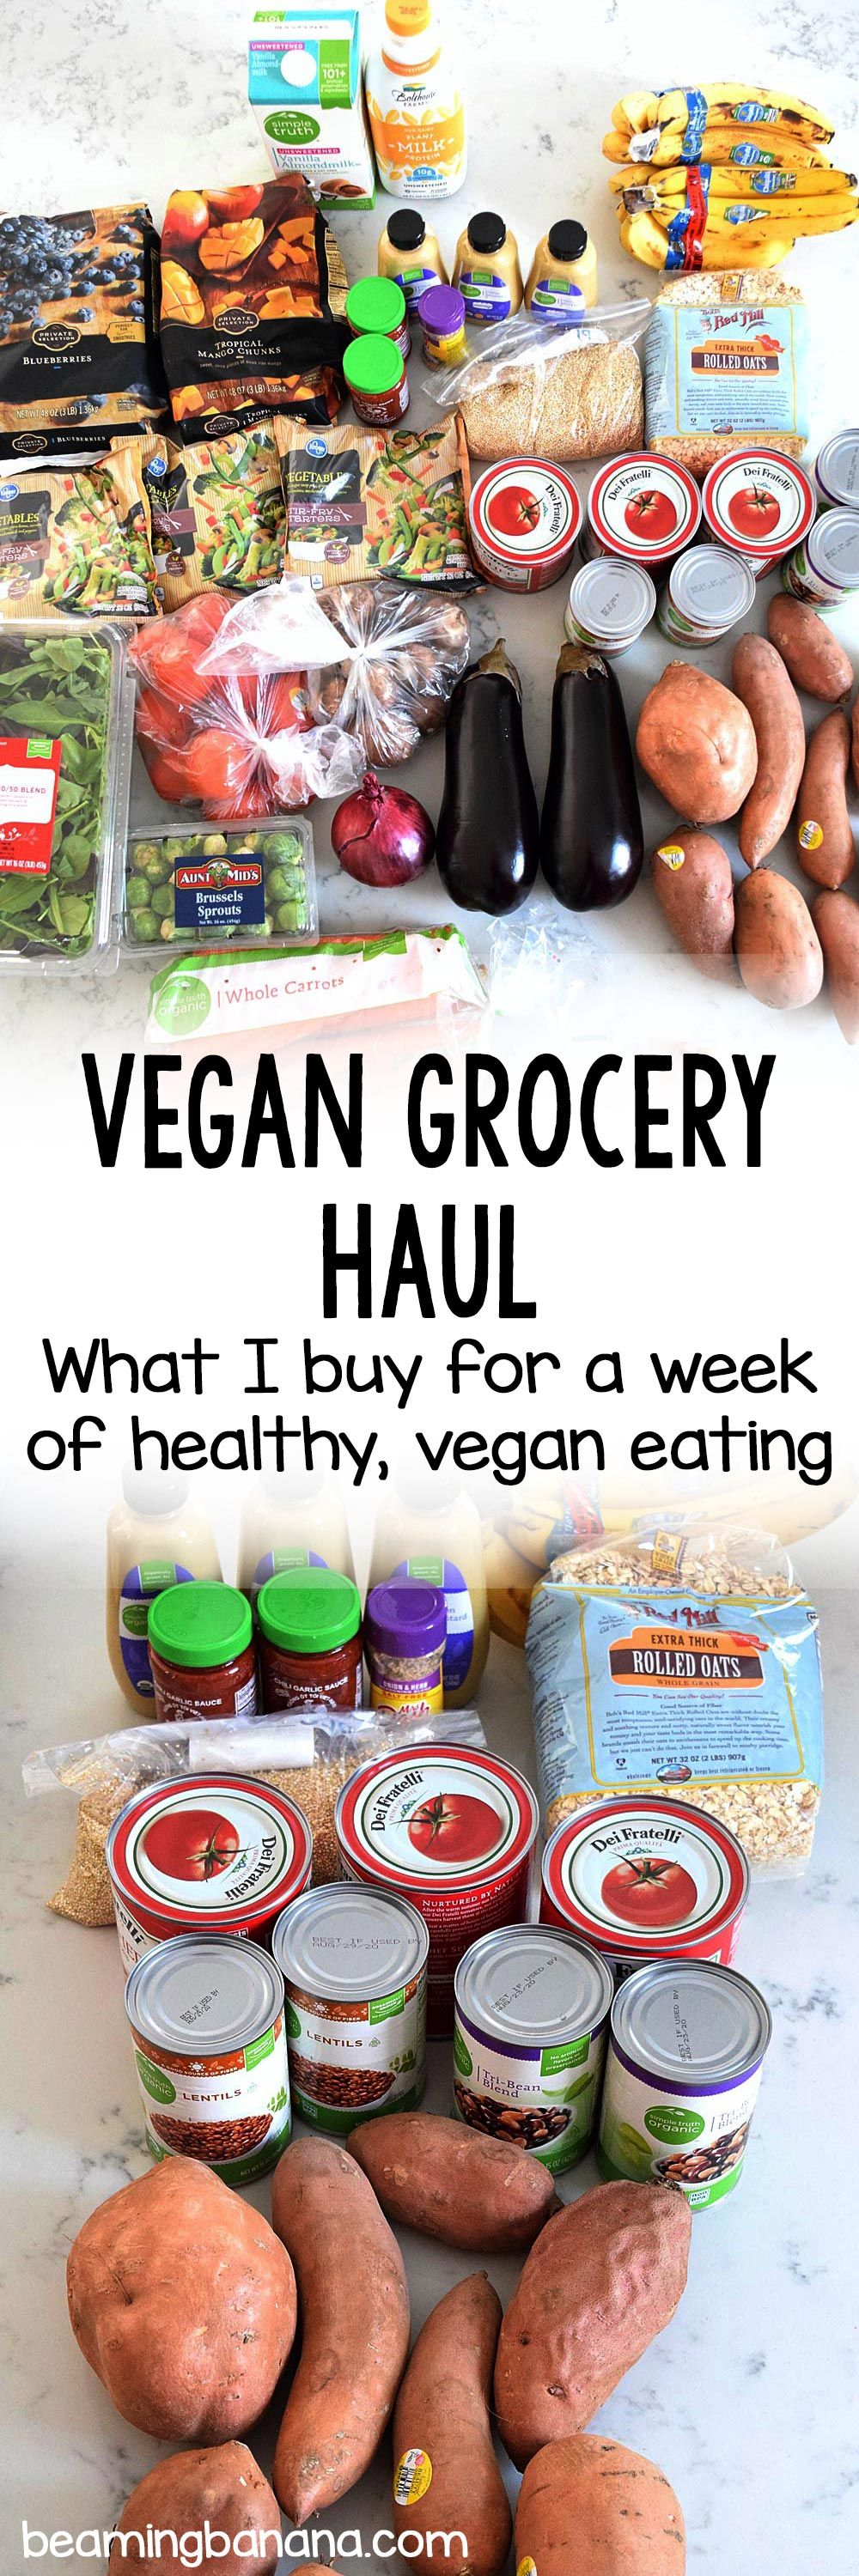 Walking you through my weekly vegan grocery haul!